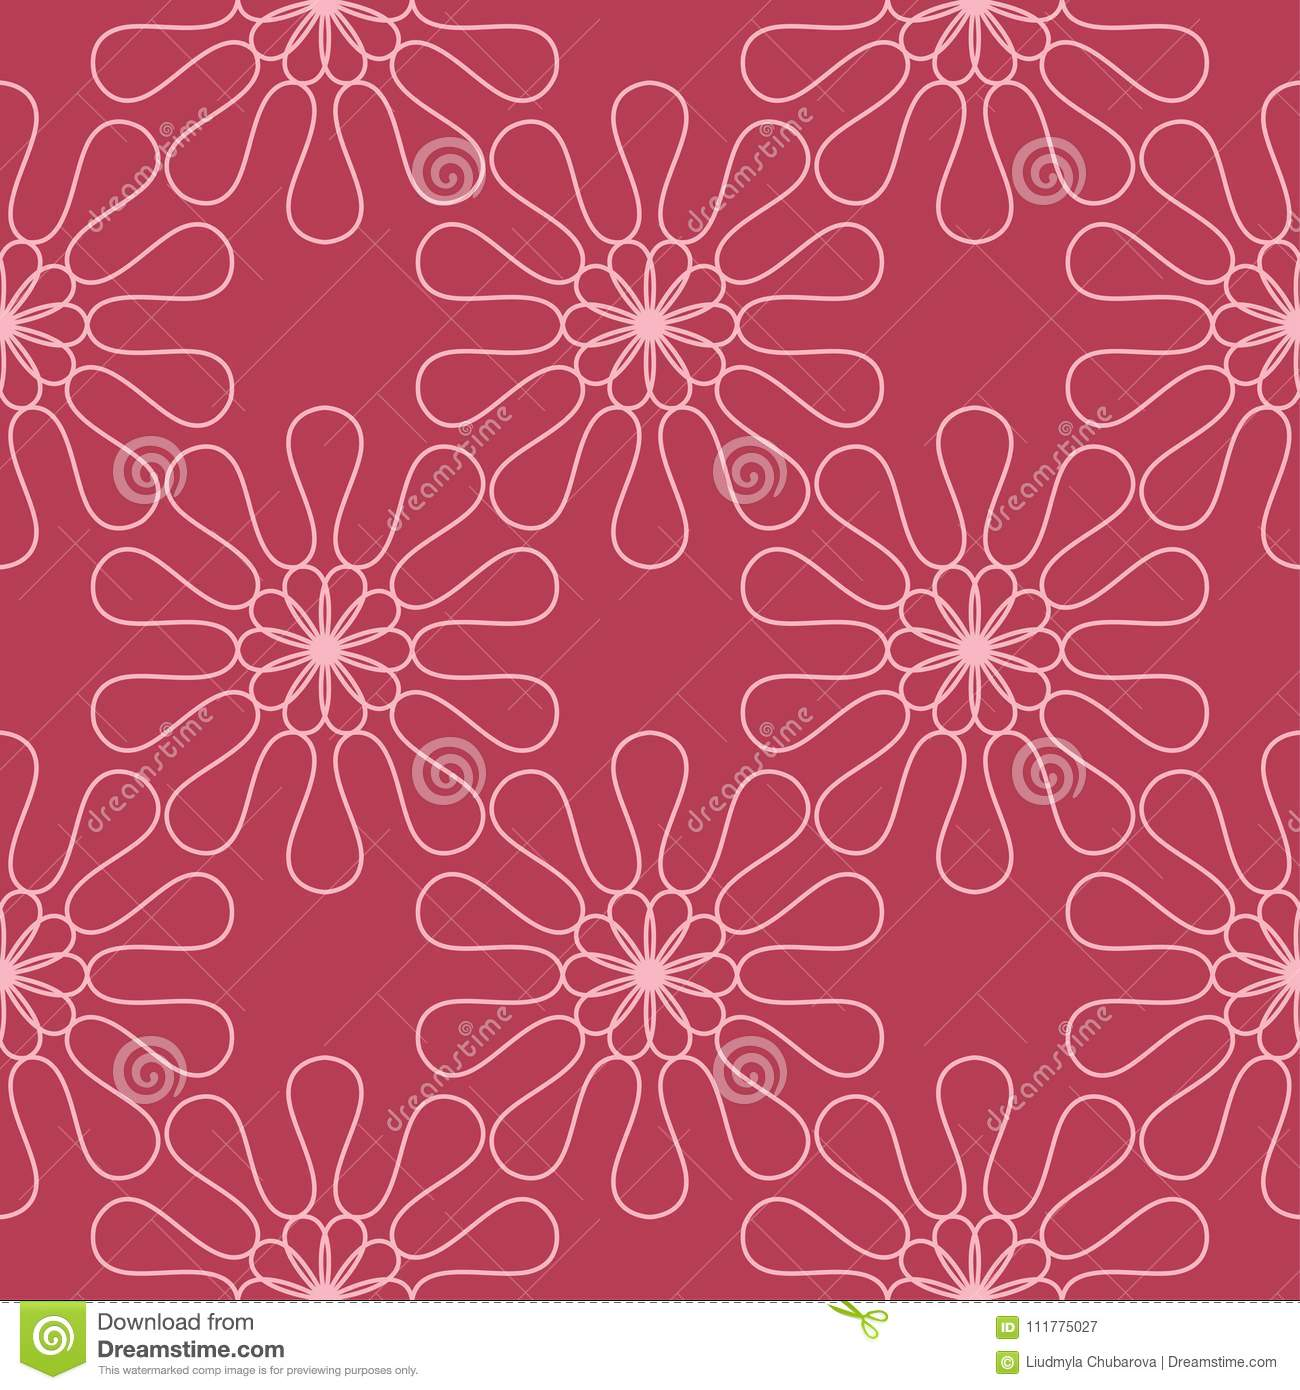 Red floral seamless background. Ornamental pattern